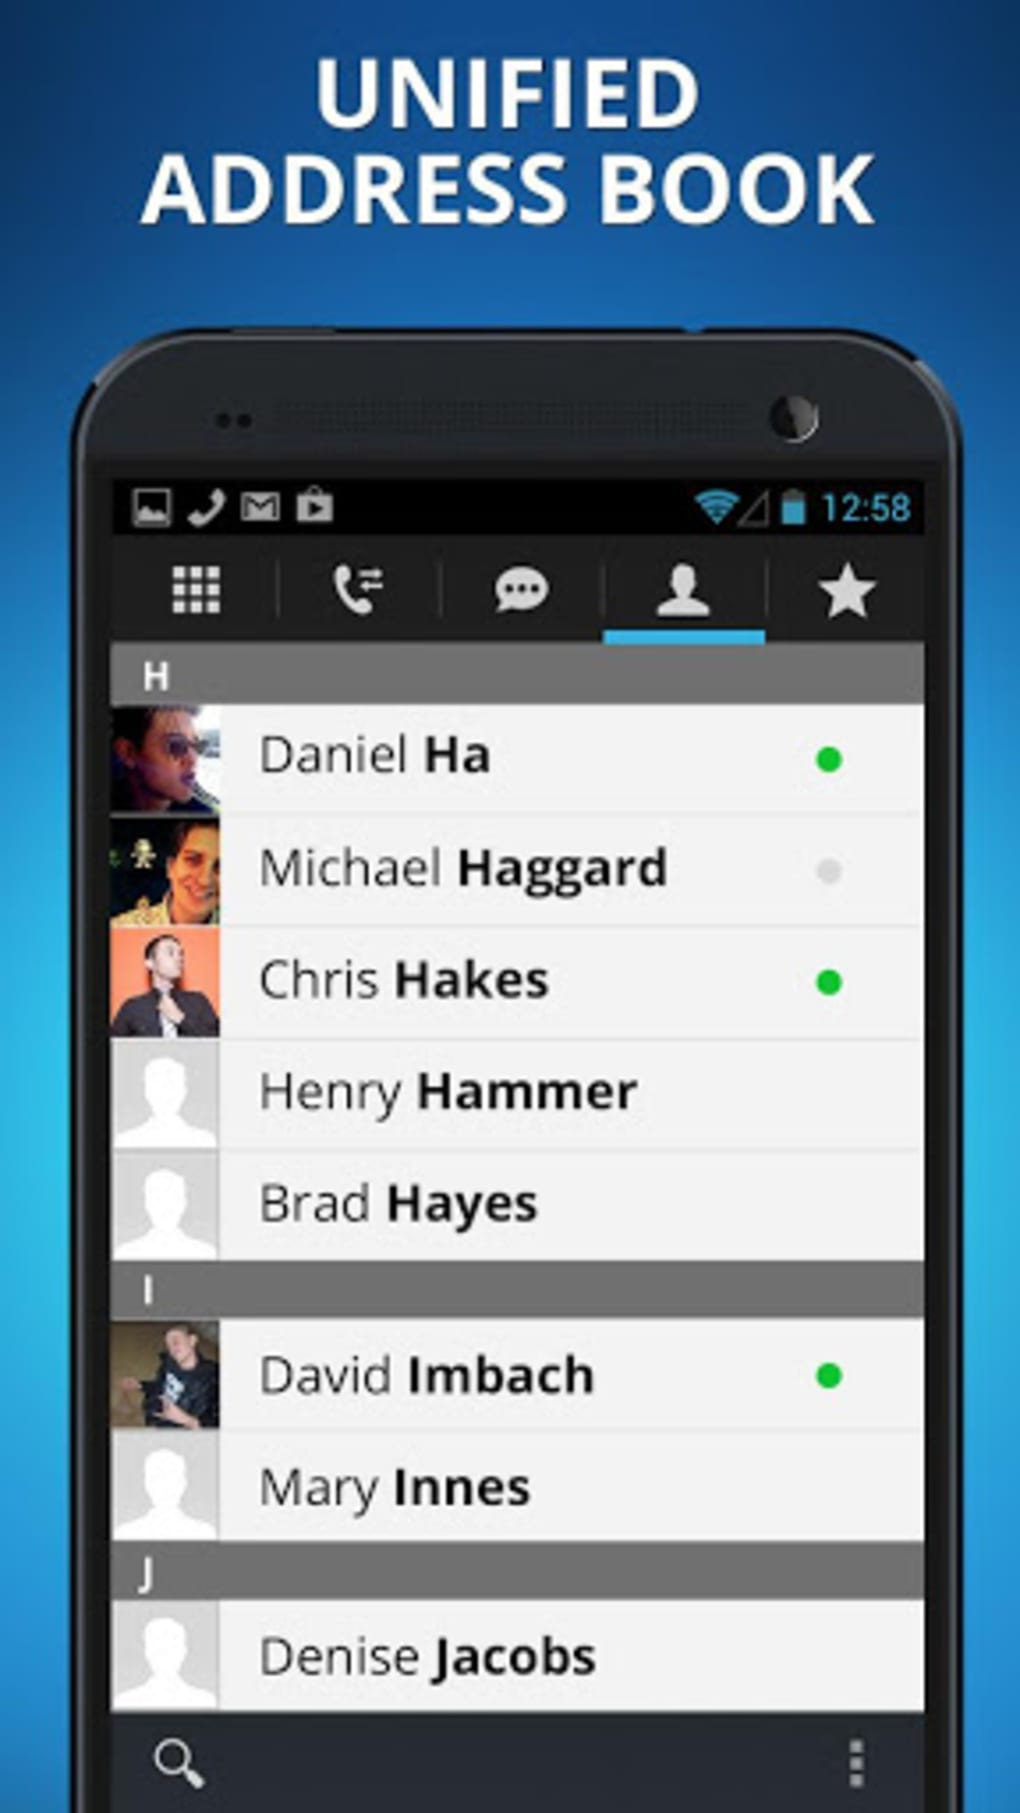 Talkatone free calls & texting for Android - Download